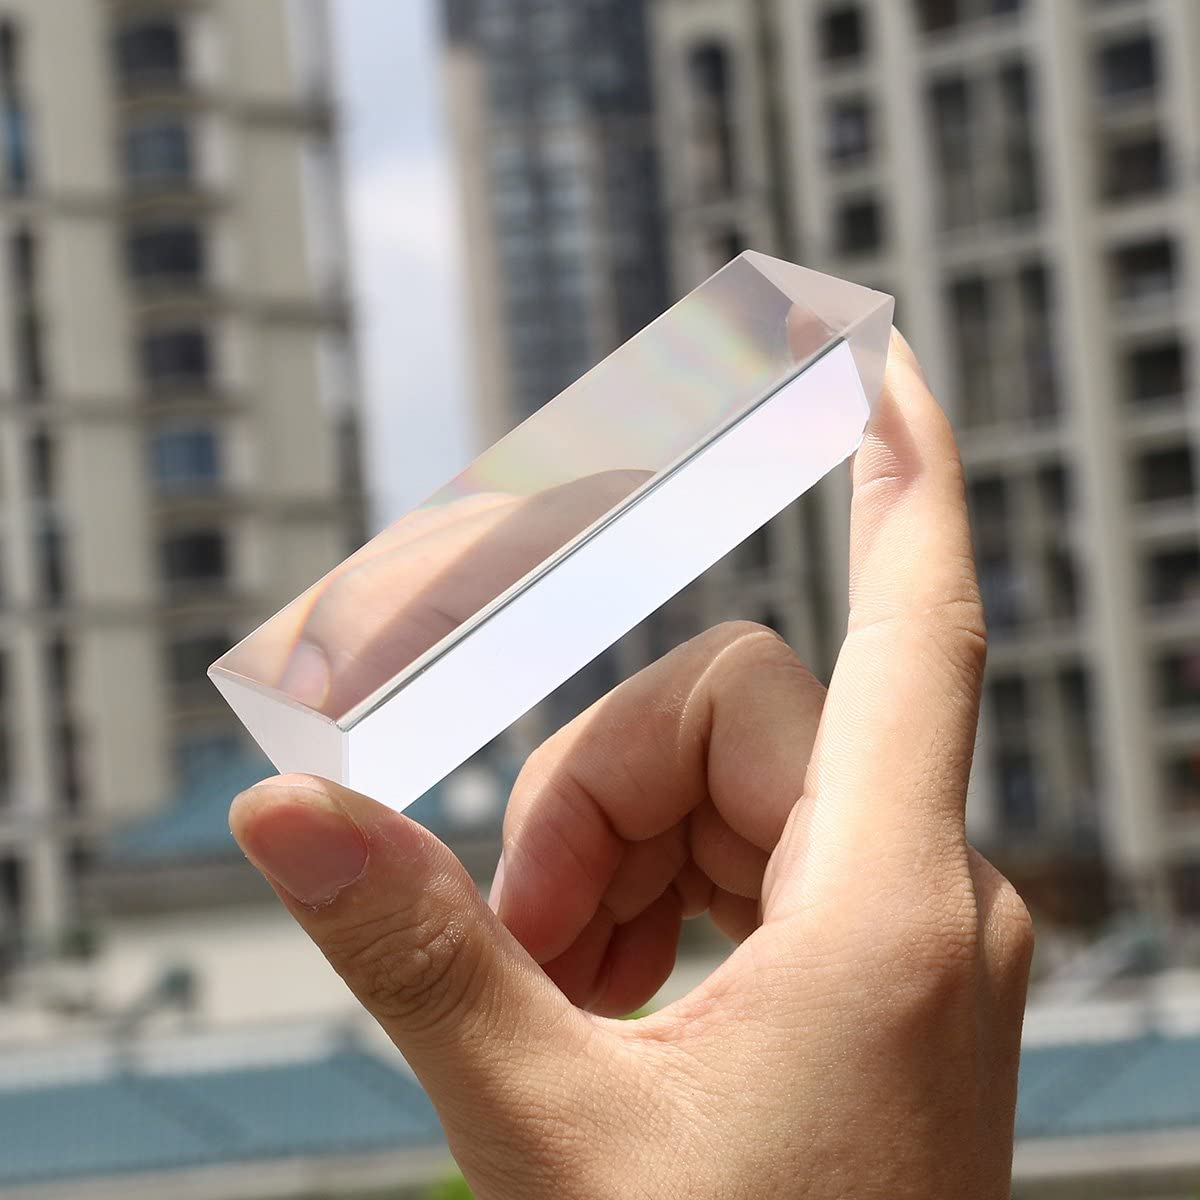 Hemobllo Optical Glass Triangular Prism for Teaching Light Spectrum Physics and Photo Photography Prism